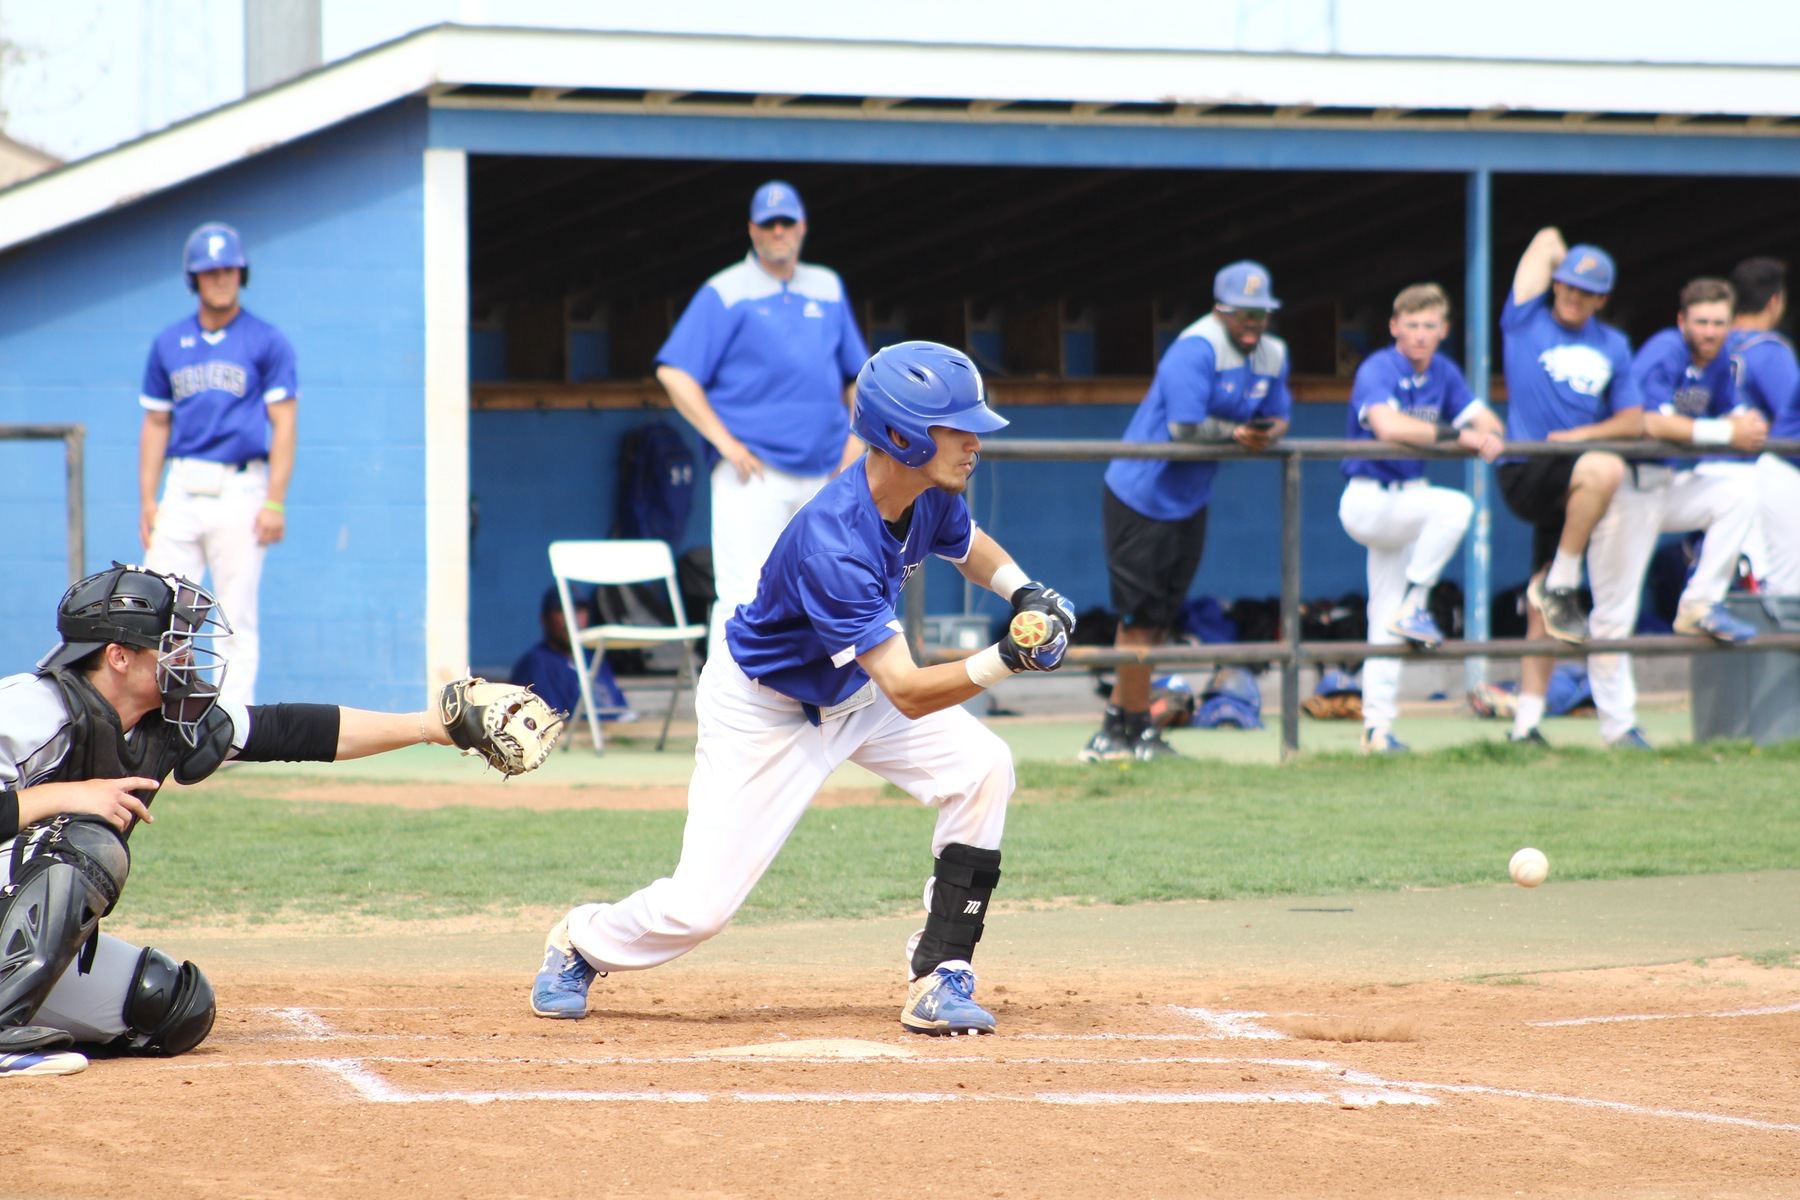 Beavers give up seventh inning lead to Barton